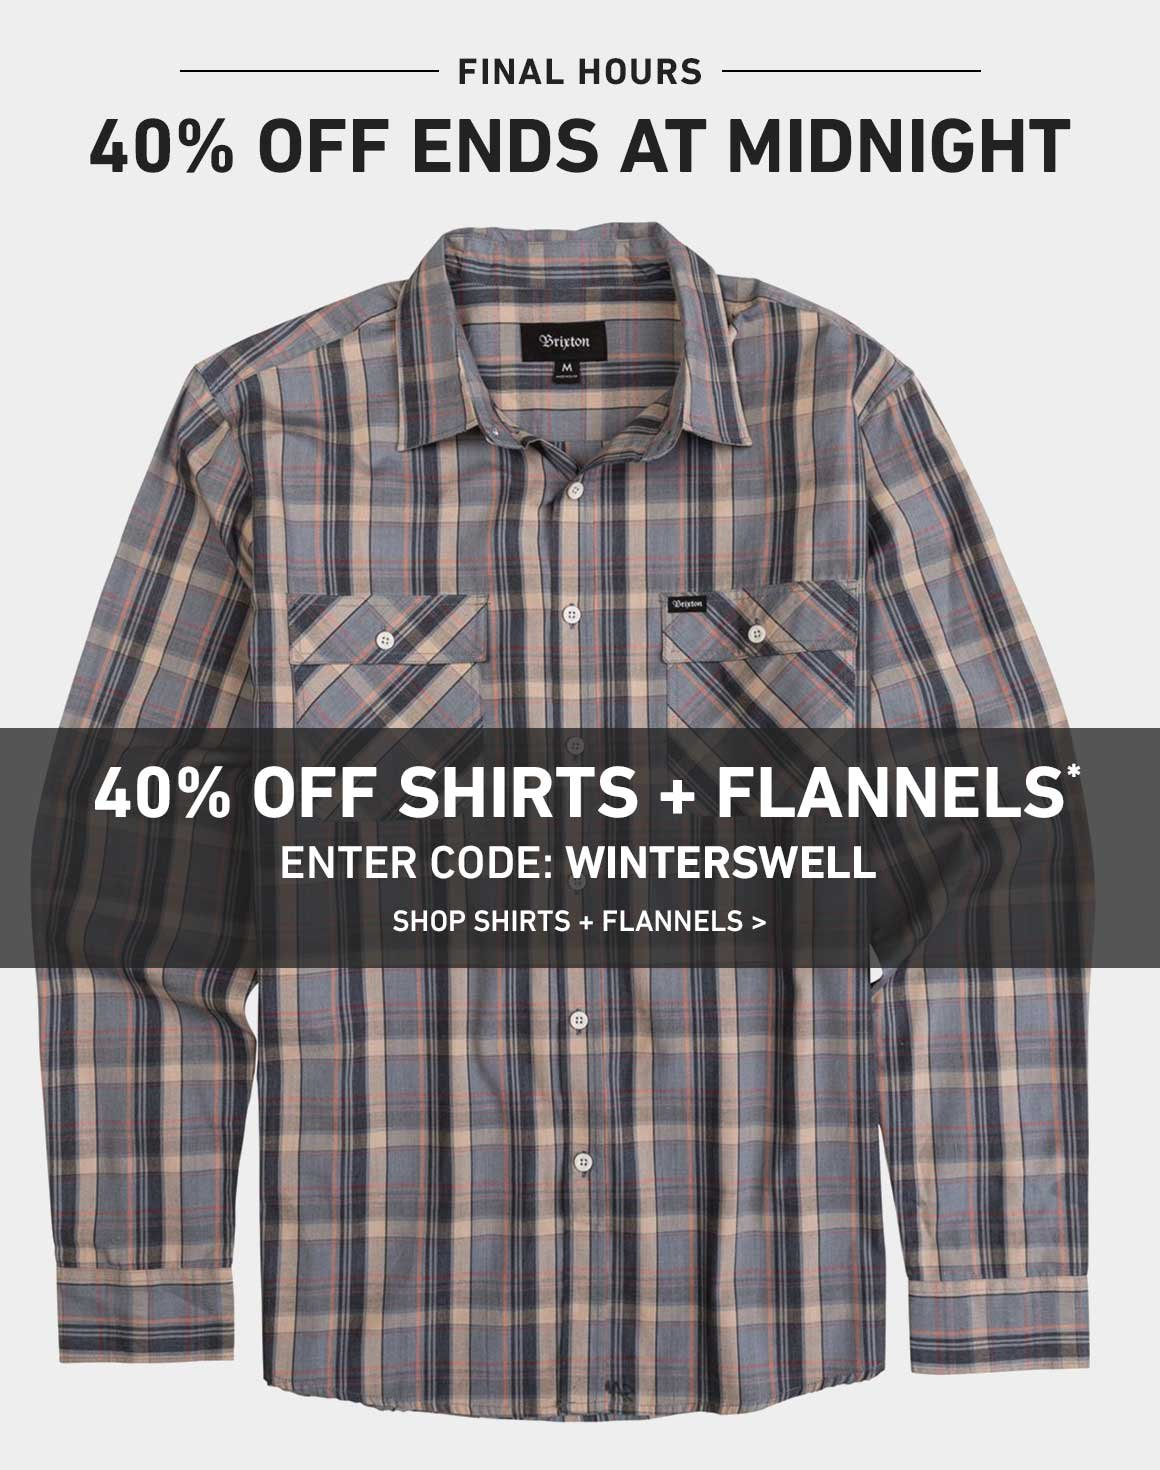 ENDS TONIGHT AT MIDNIGHT: 40% Off New Shirts + Flannels! Enter Code: WINTERSWELL